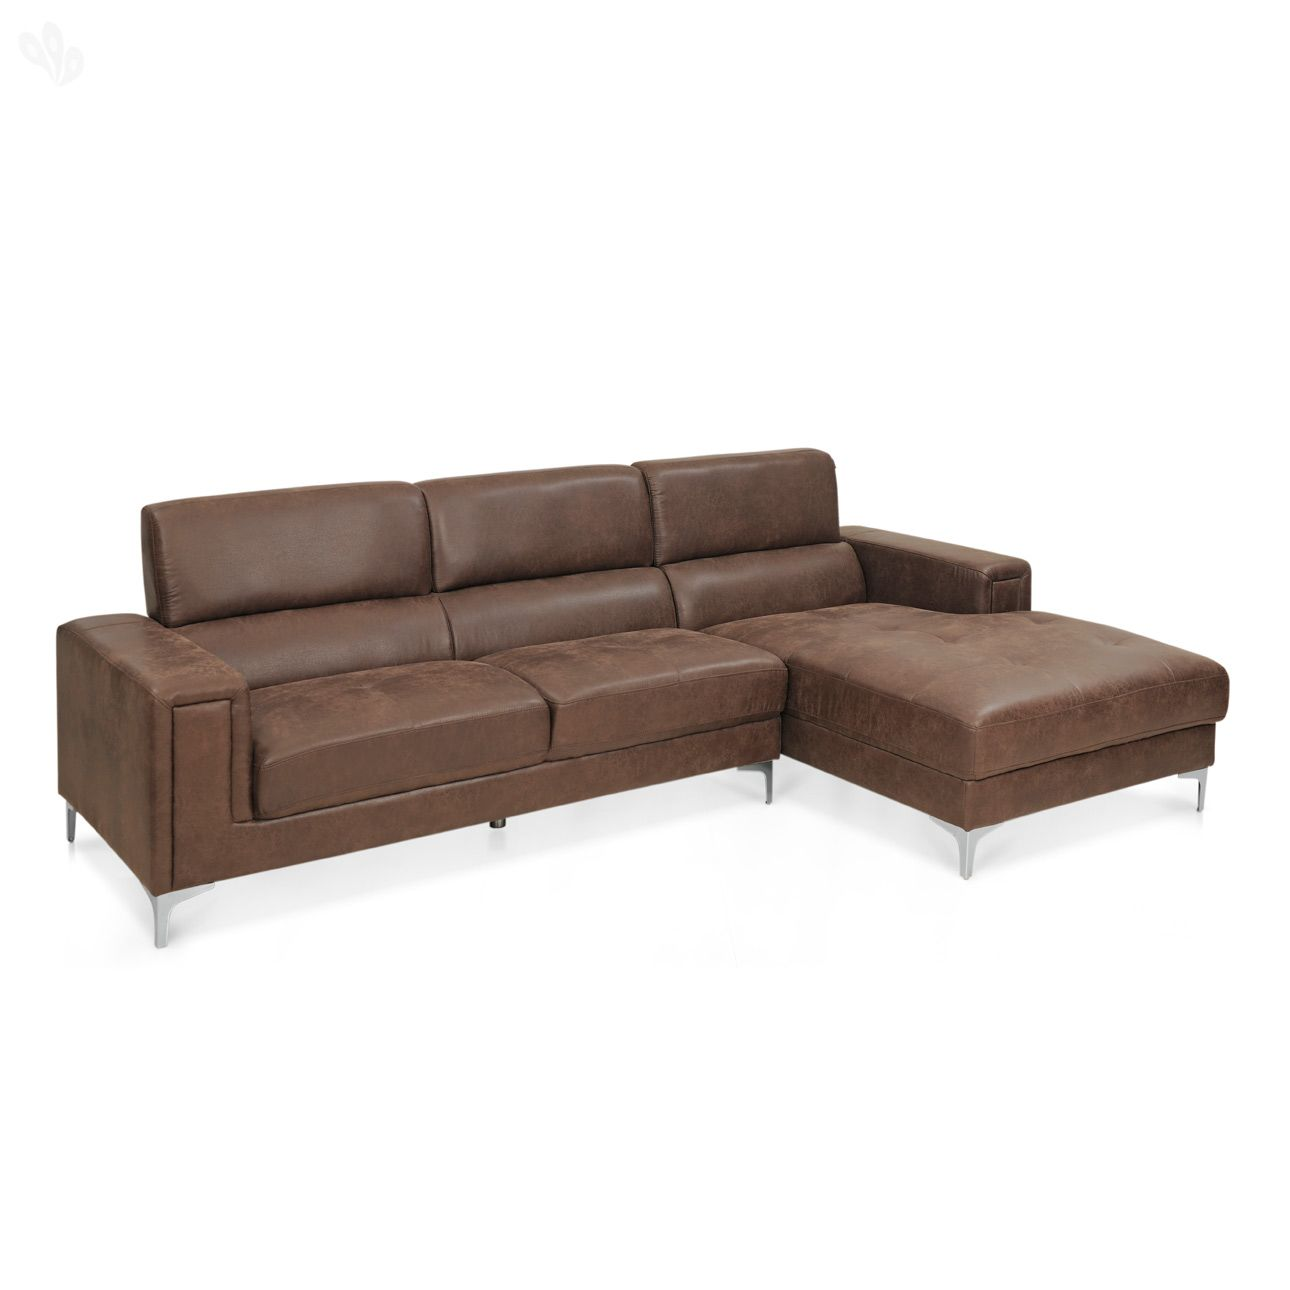 Royaloak Flora Sofa Right Brown Online From India S Most Affordable Furniture Brand